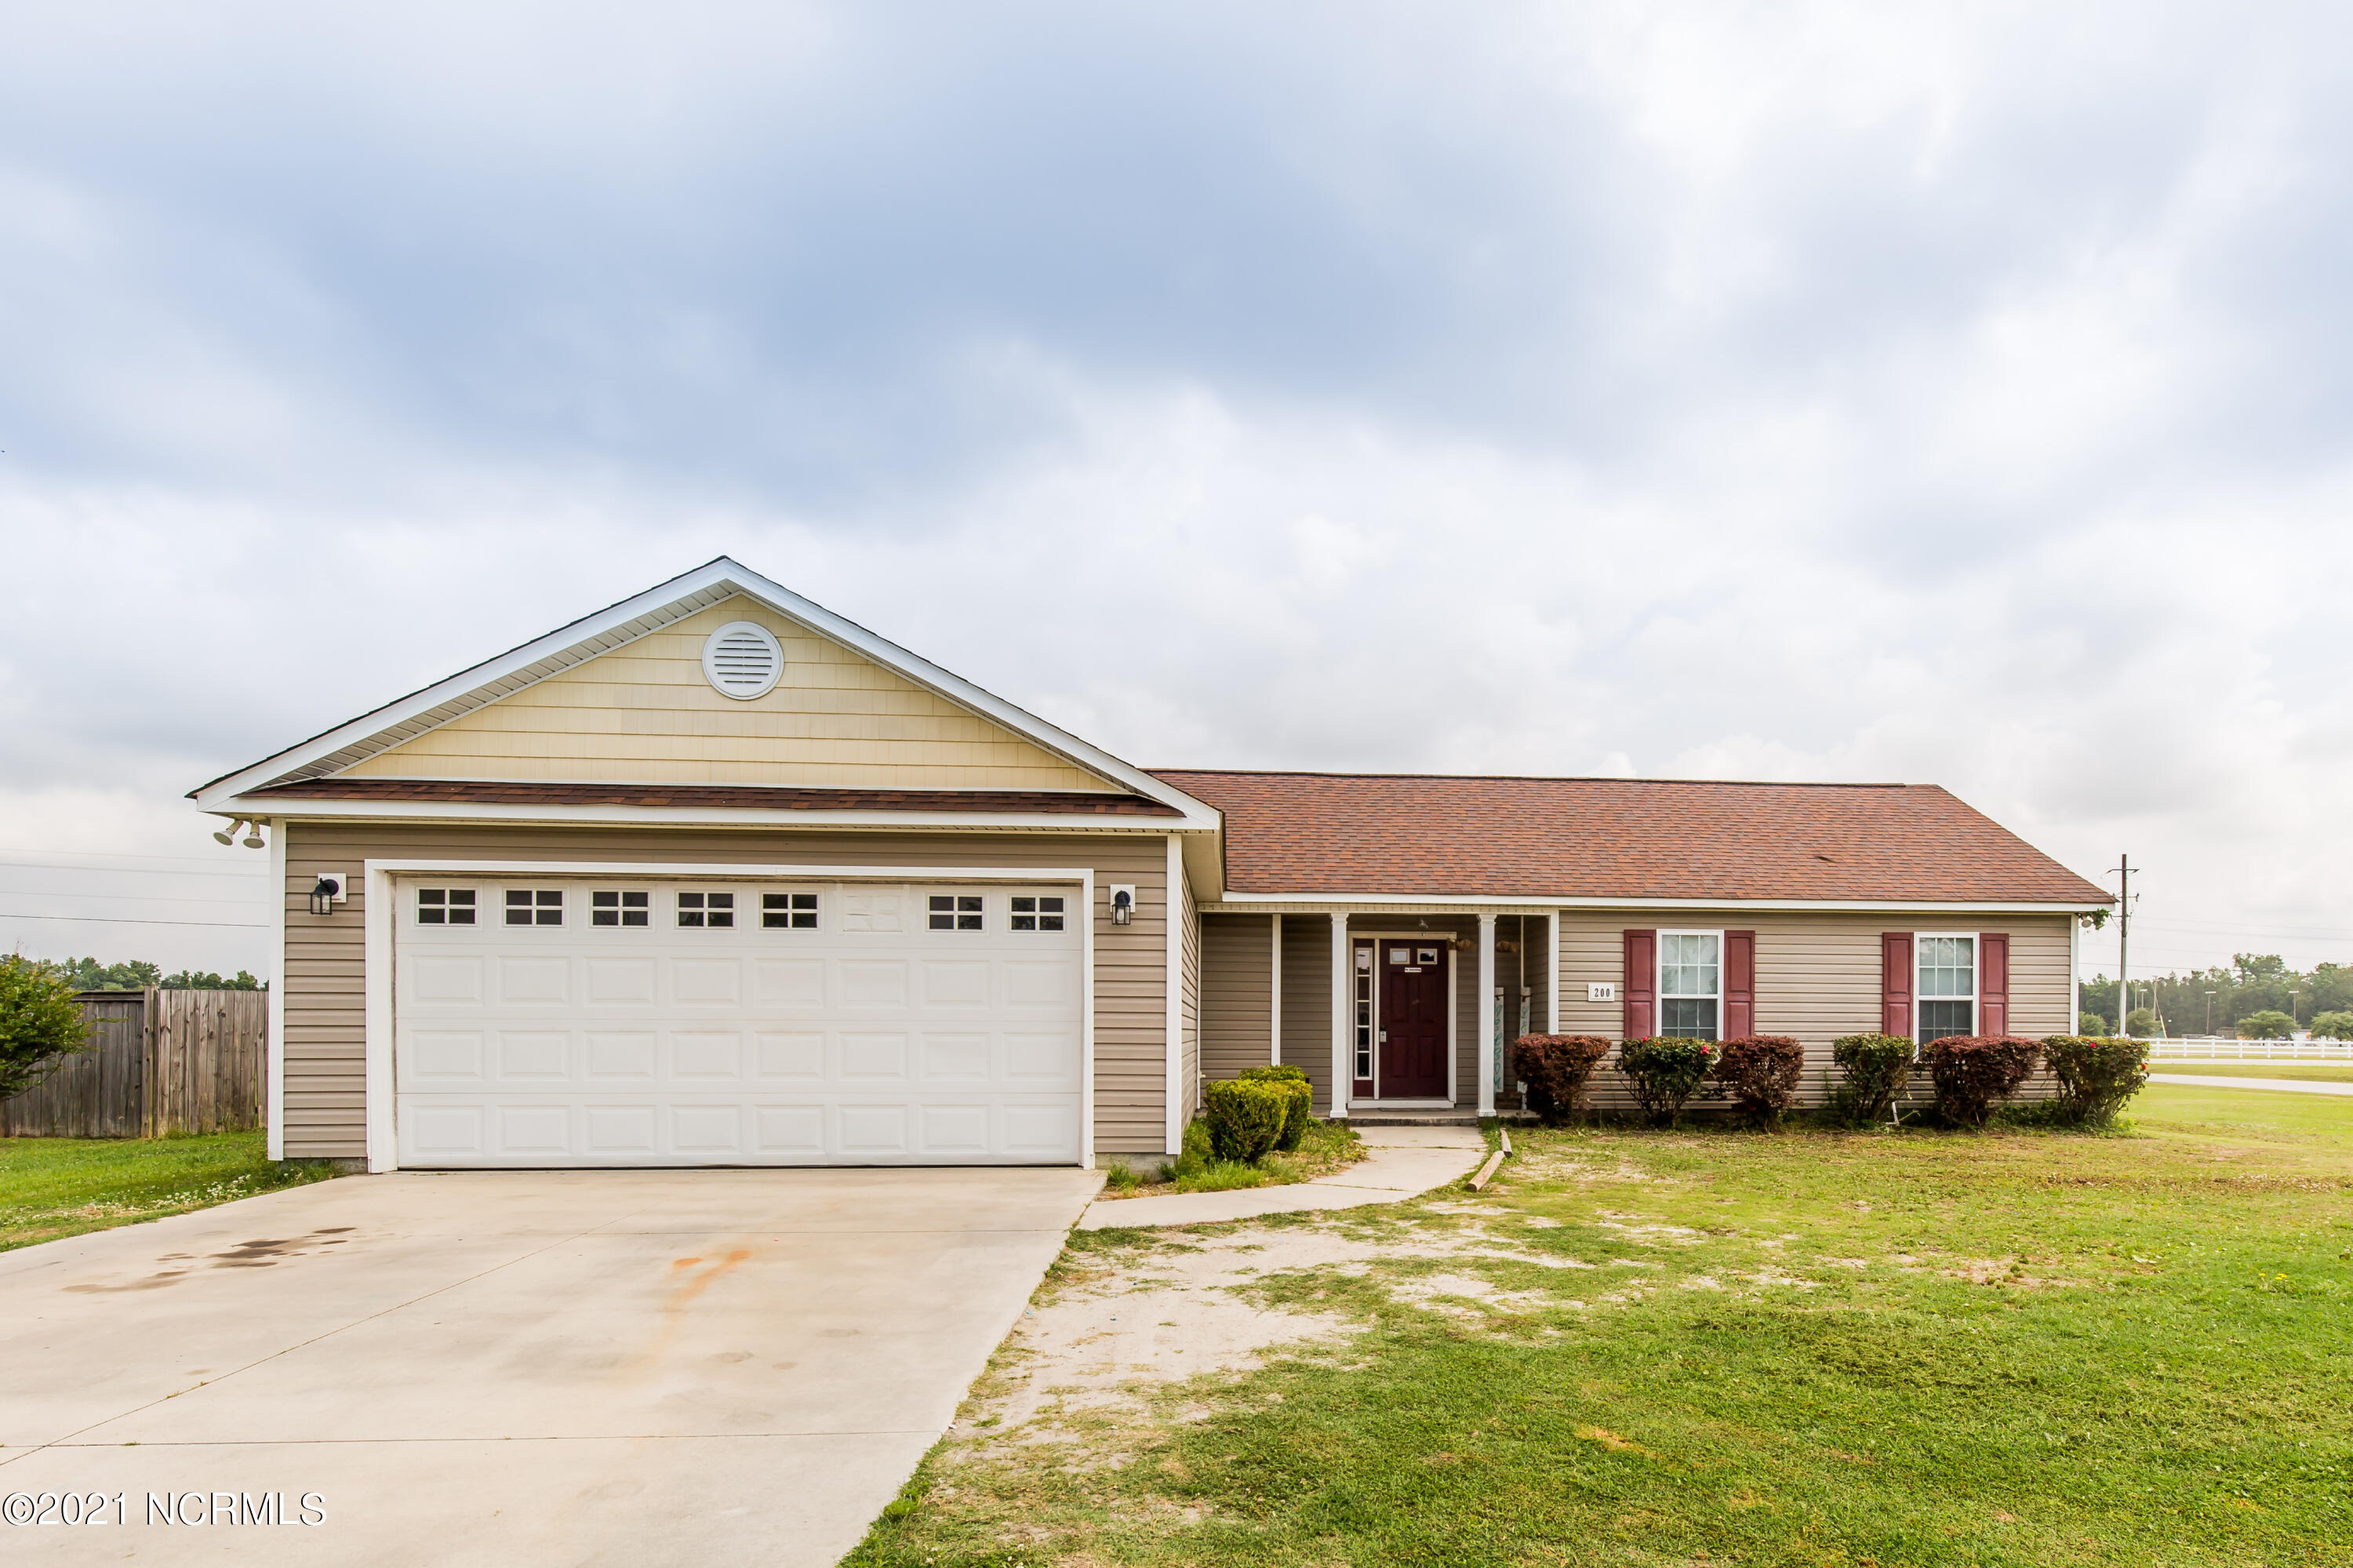 Beautiful 4 bedroom, 2 bath home outside city limits! Looking for space, this home sits on a corner lot on just over half and acre. Open living area with lots of natural light. Master bedroom has a walk-in closet, private ensuite with dual vanity. New carpet recently installed. New paint. Call today to schedule a showing.